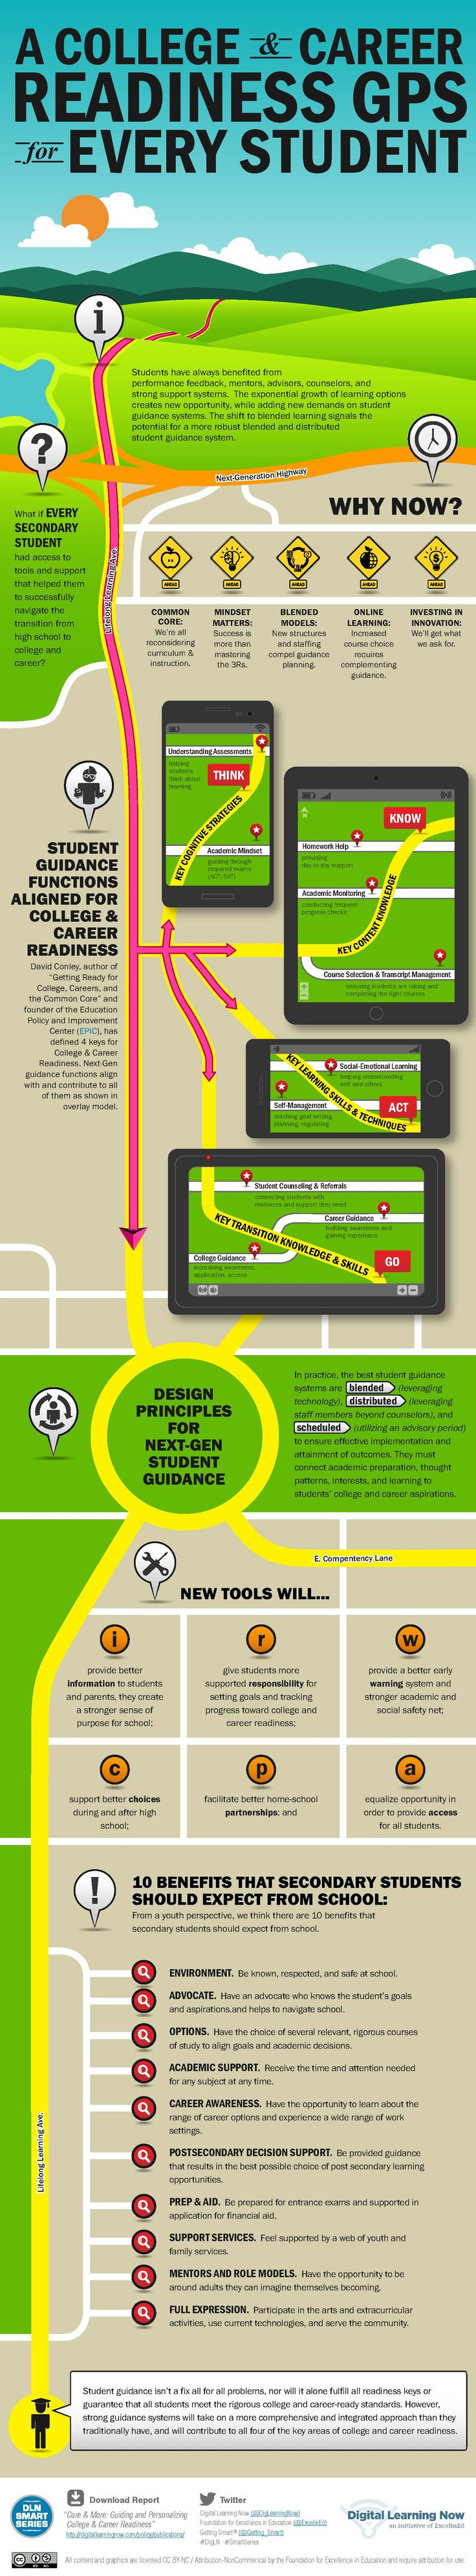 Infographic: College and Career Readiness GPS for Every Student - Getting Smart by Getting Smart Staff - CCSS, common core, deeper learning,...